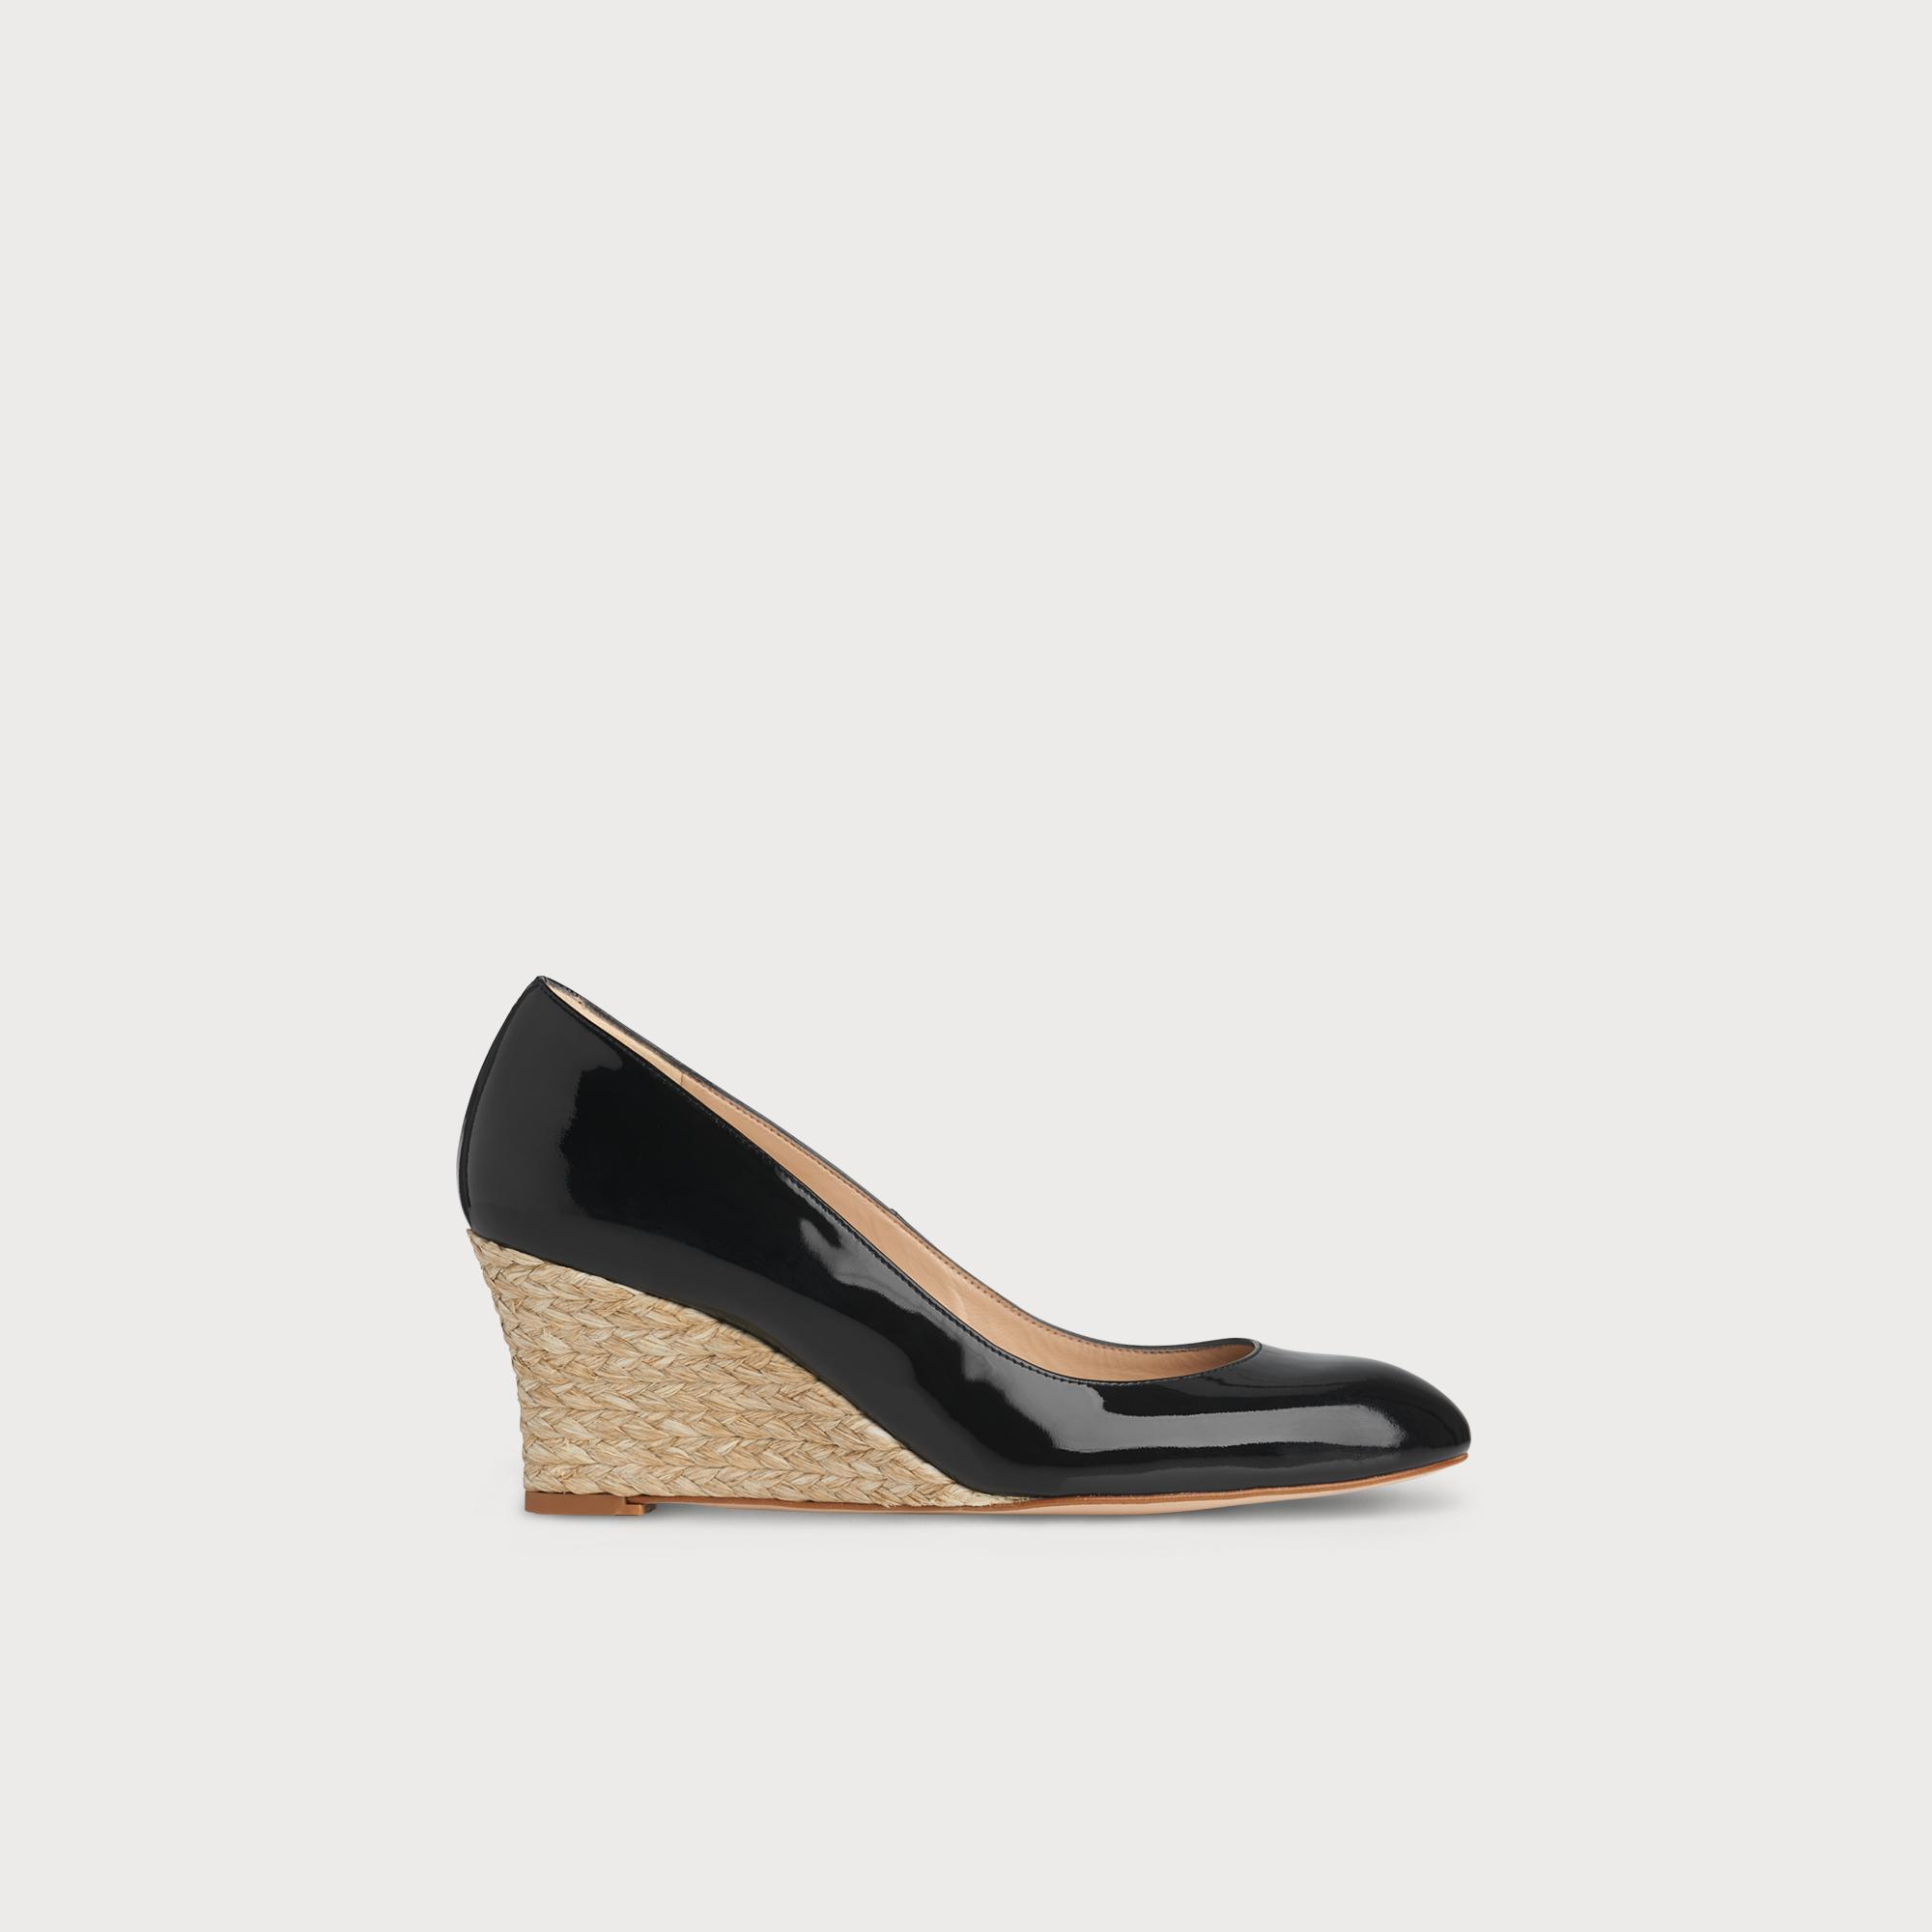 Eevi Black Patent Closed Courts   Shoes